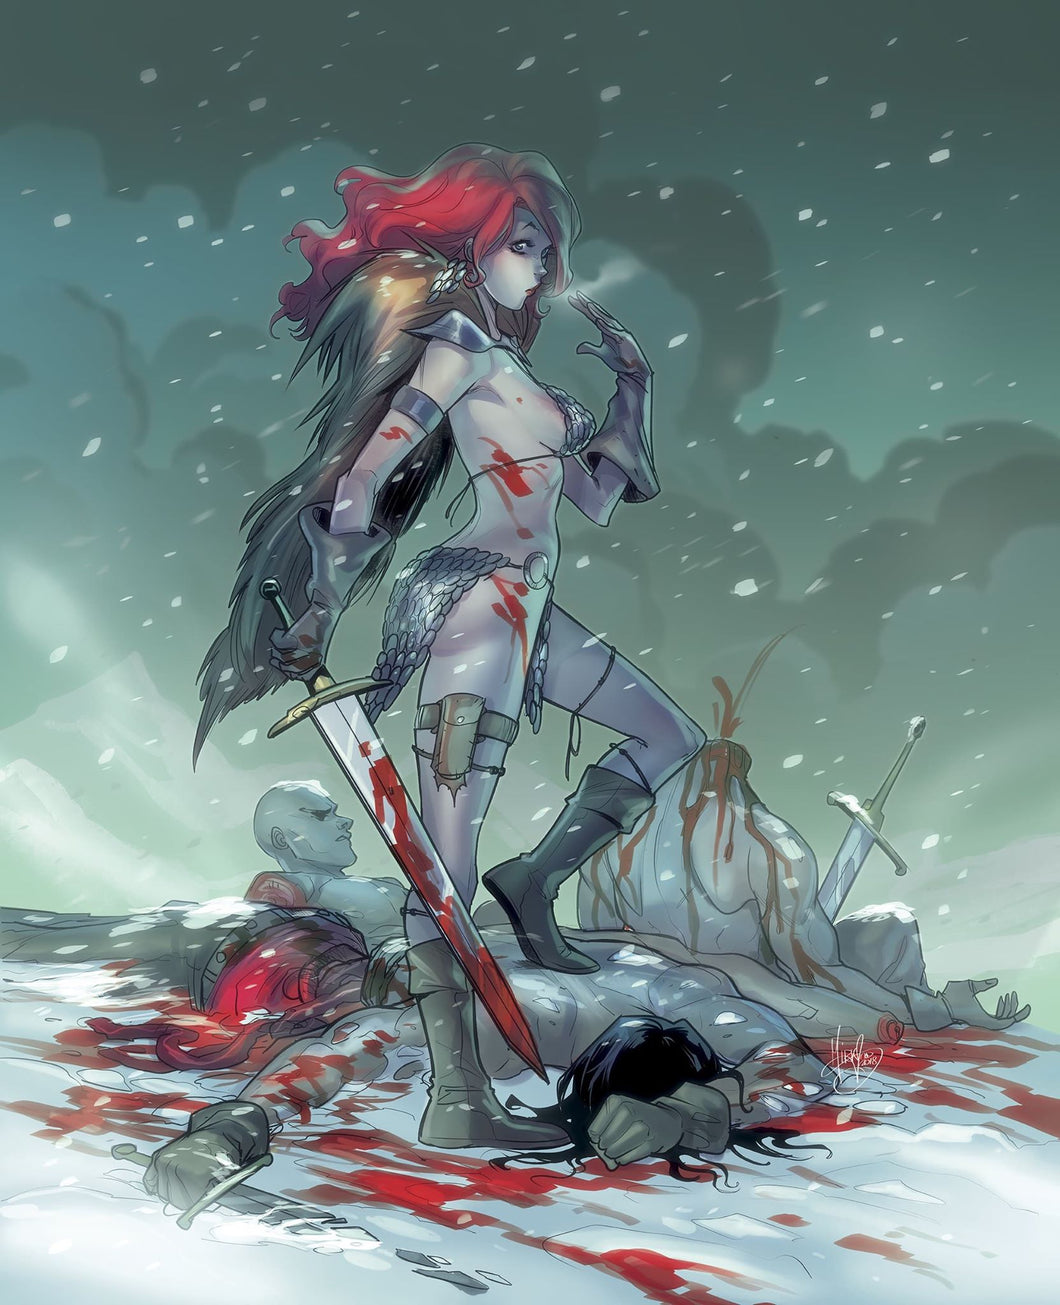 Red Sonja #1 Mirka Andolfo Virgin Exclusive - Limited to 500